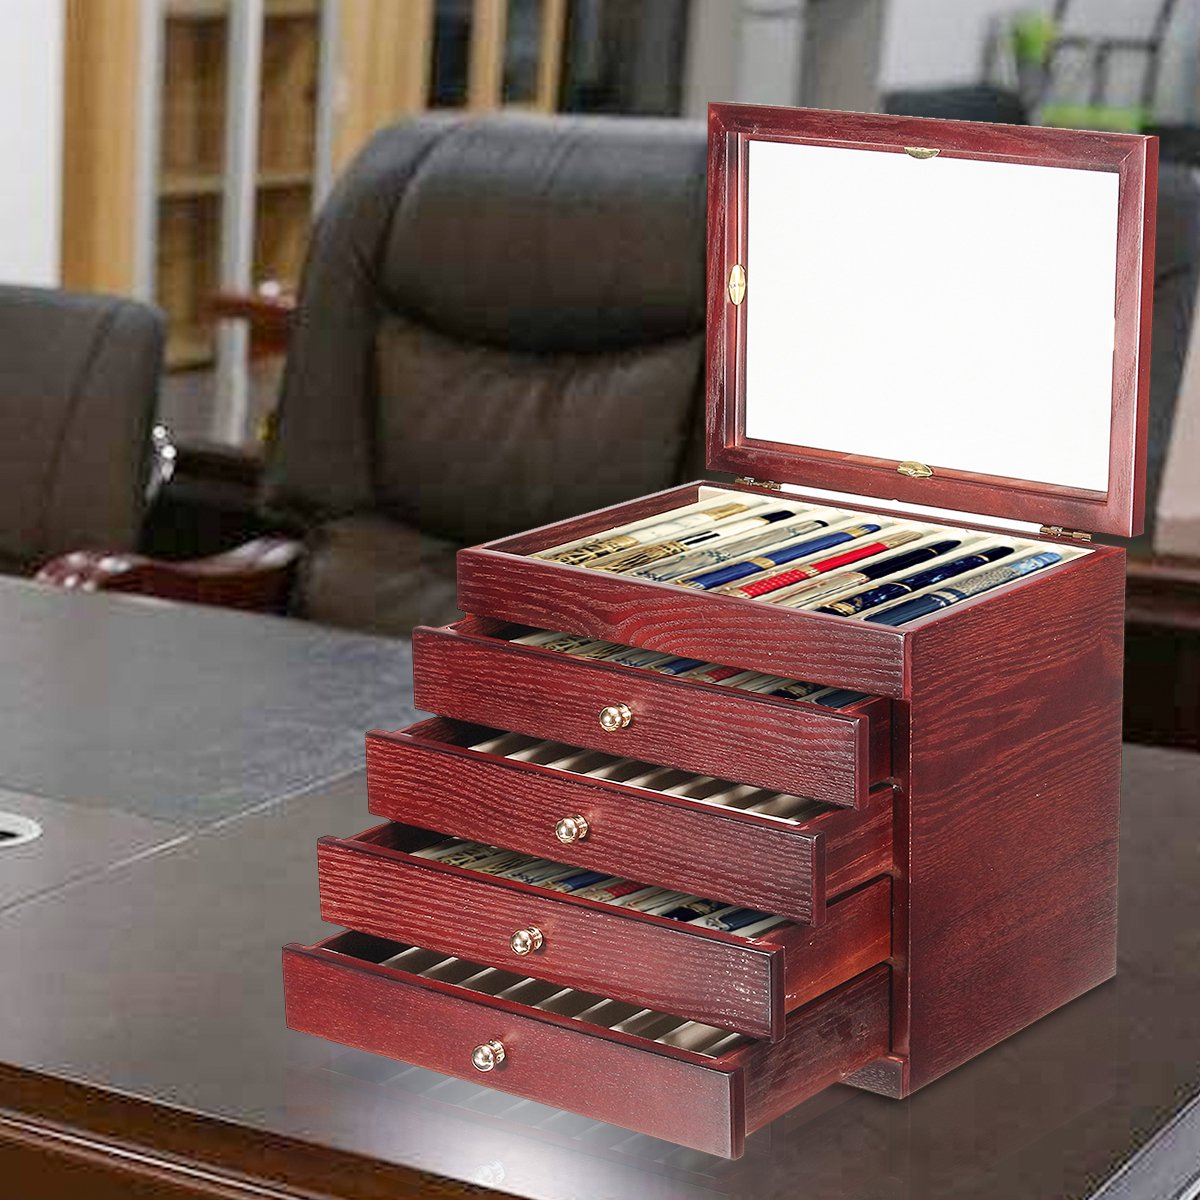 5 Layers 50 Pens Large Capacity Retro Wooden Pen Pencil Storage Case  Display Holder Wood Box